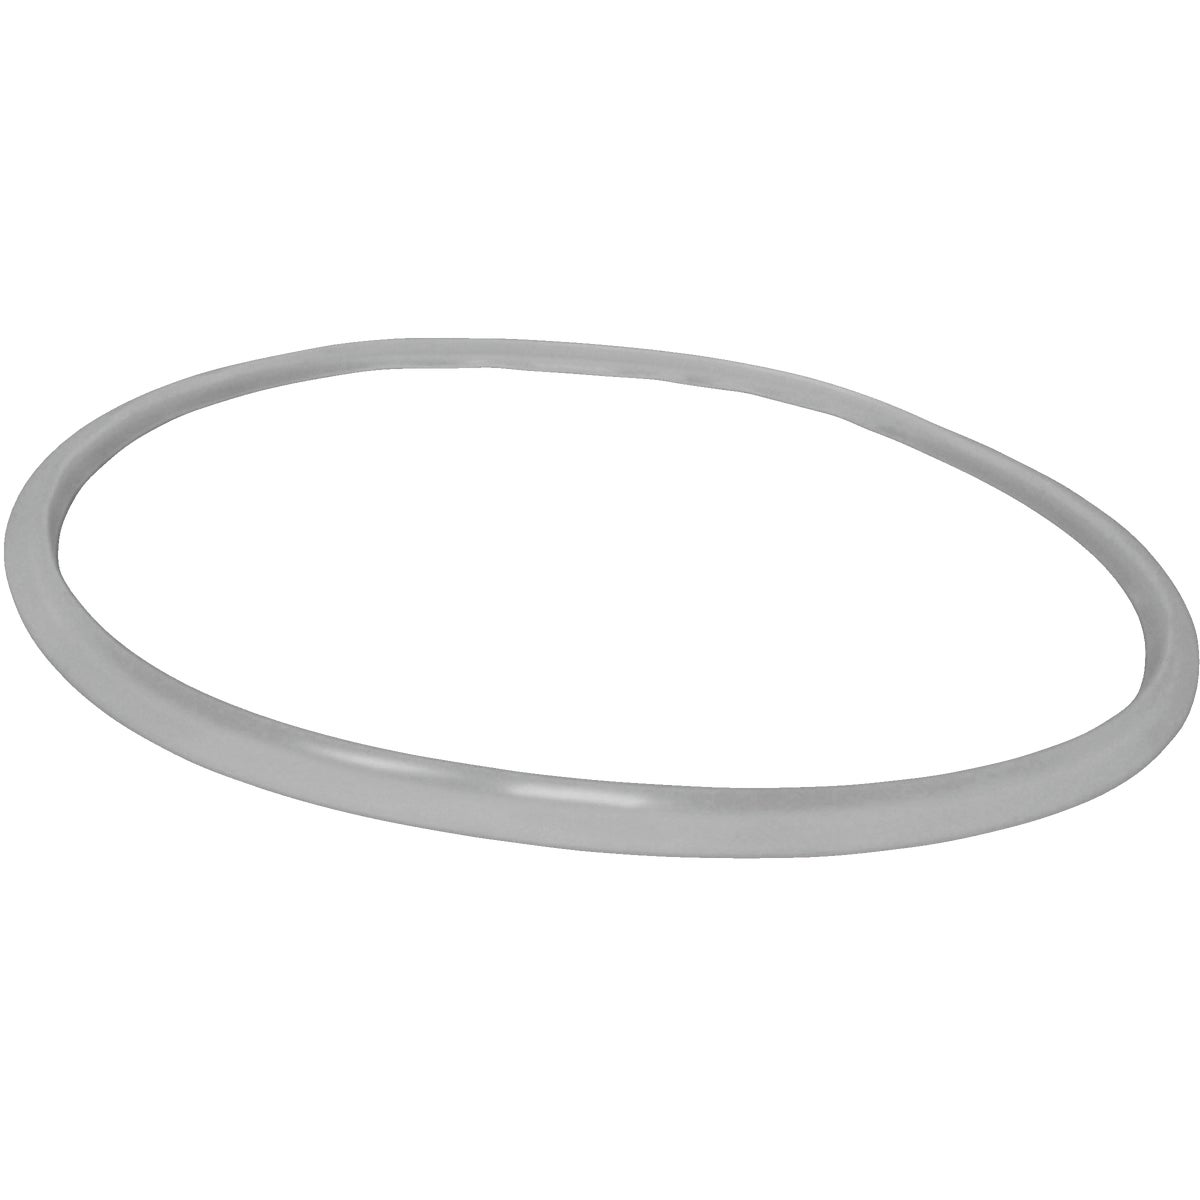 4.2QT REPLACEMENT GASKET